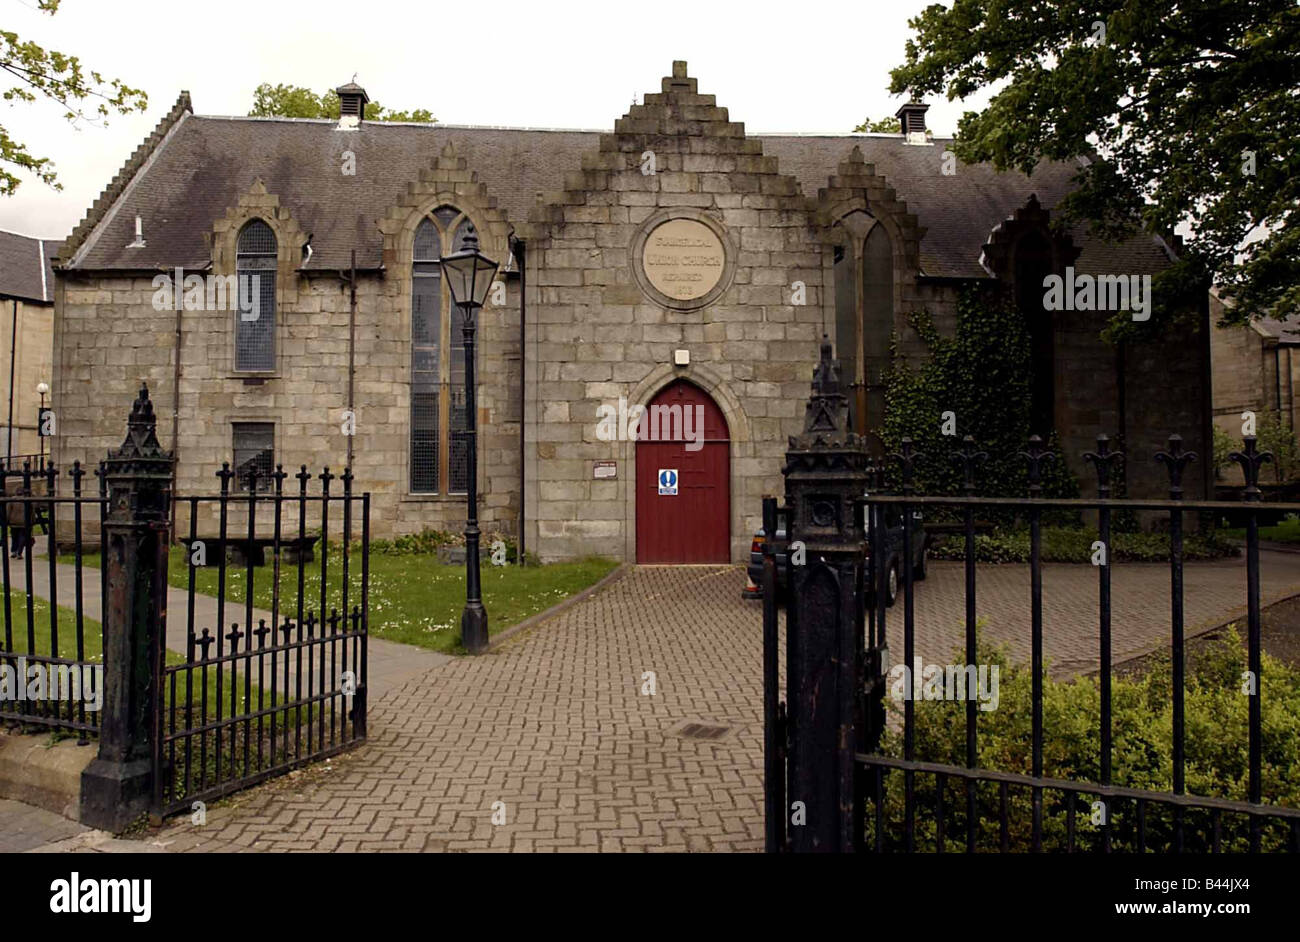 Laigh Kirk where John Witherspoon preached May 2002 - Stock Image